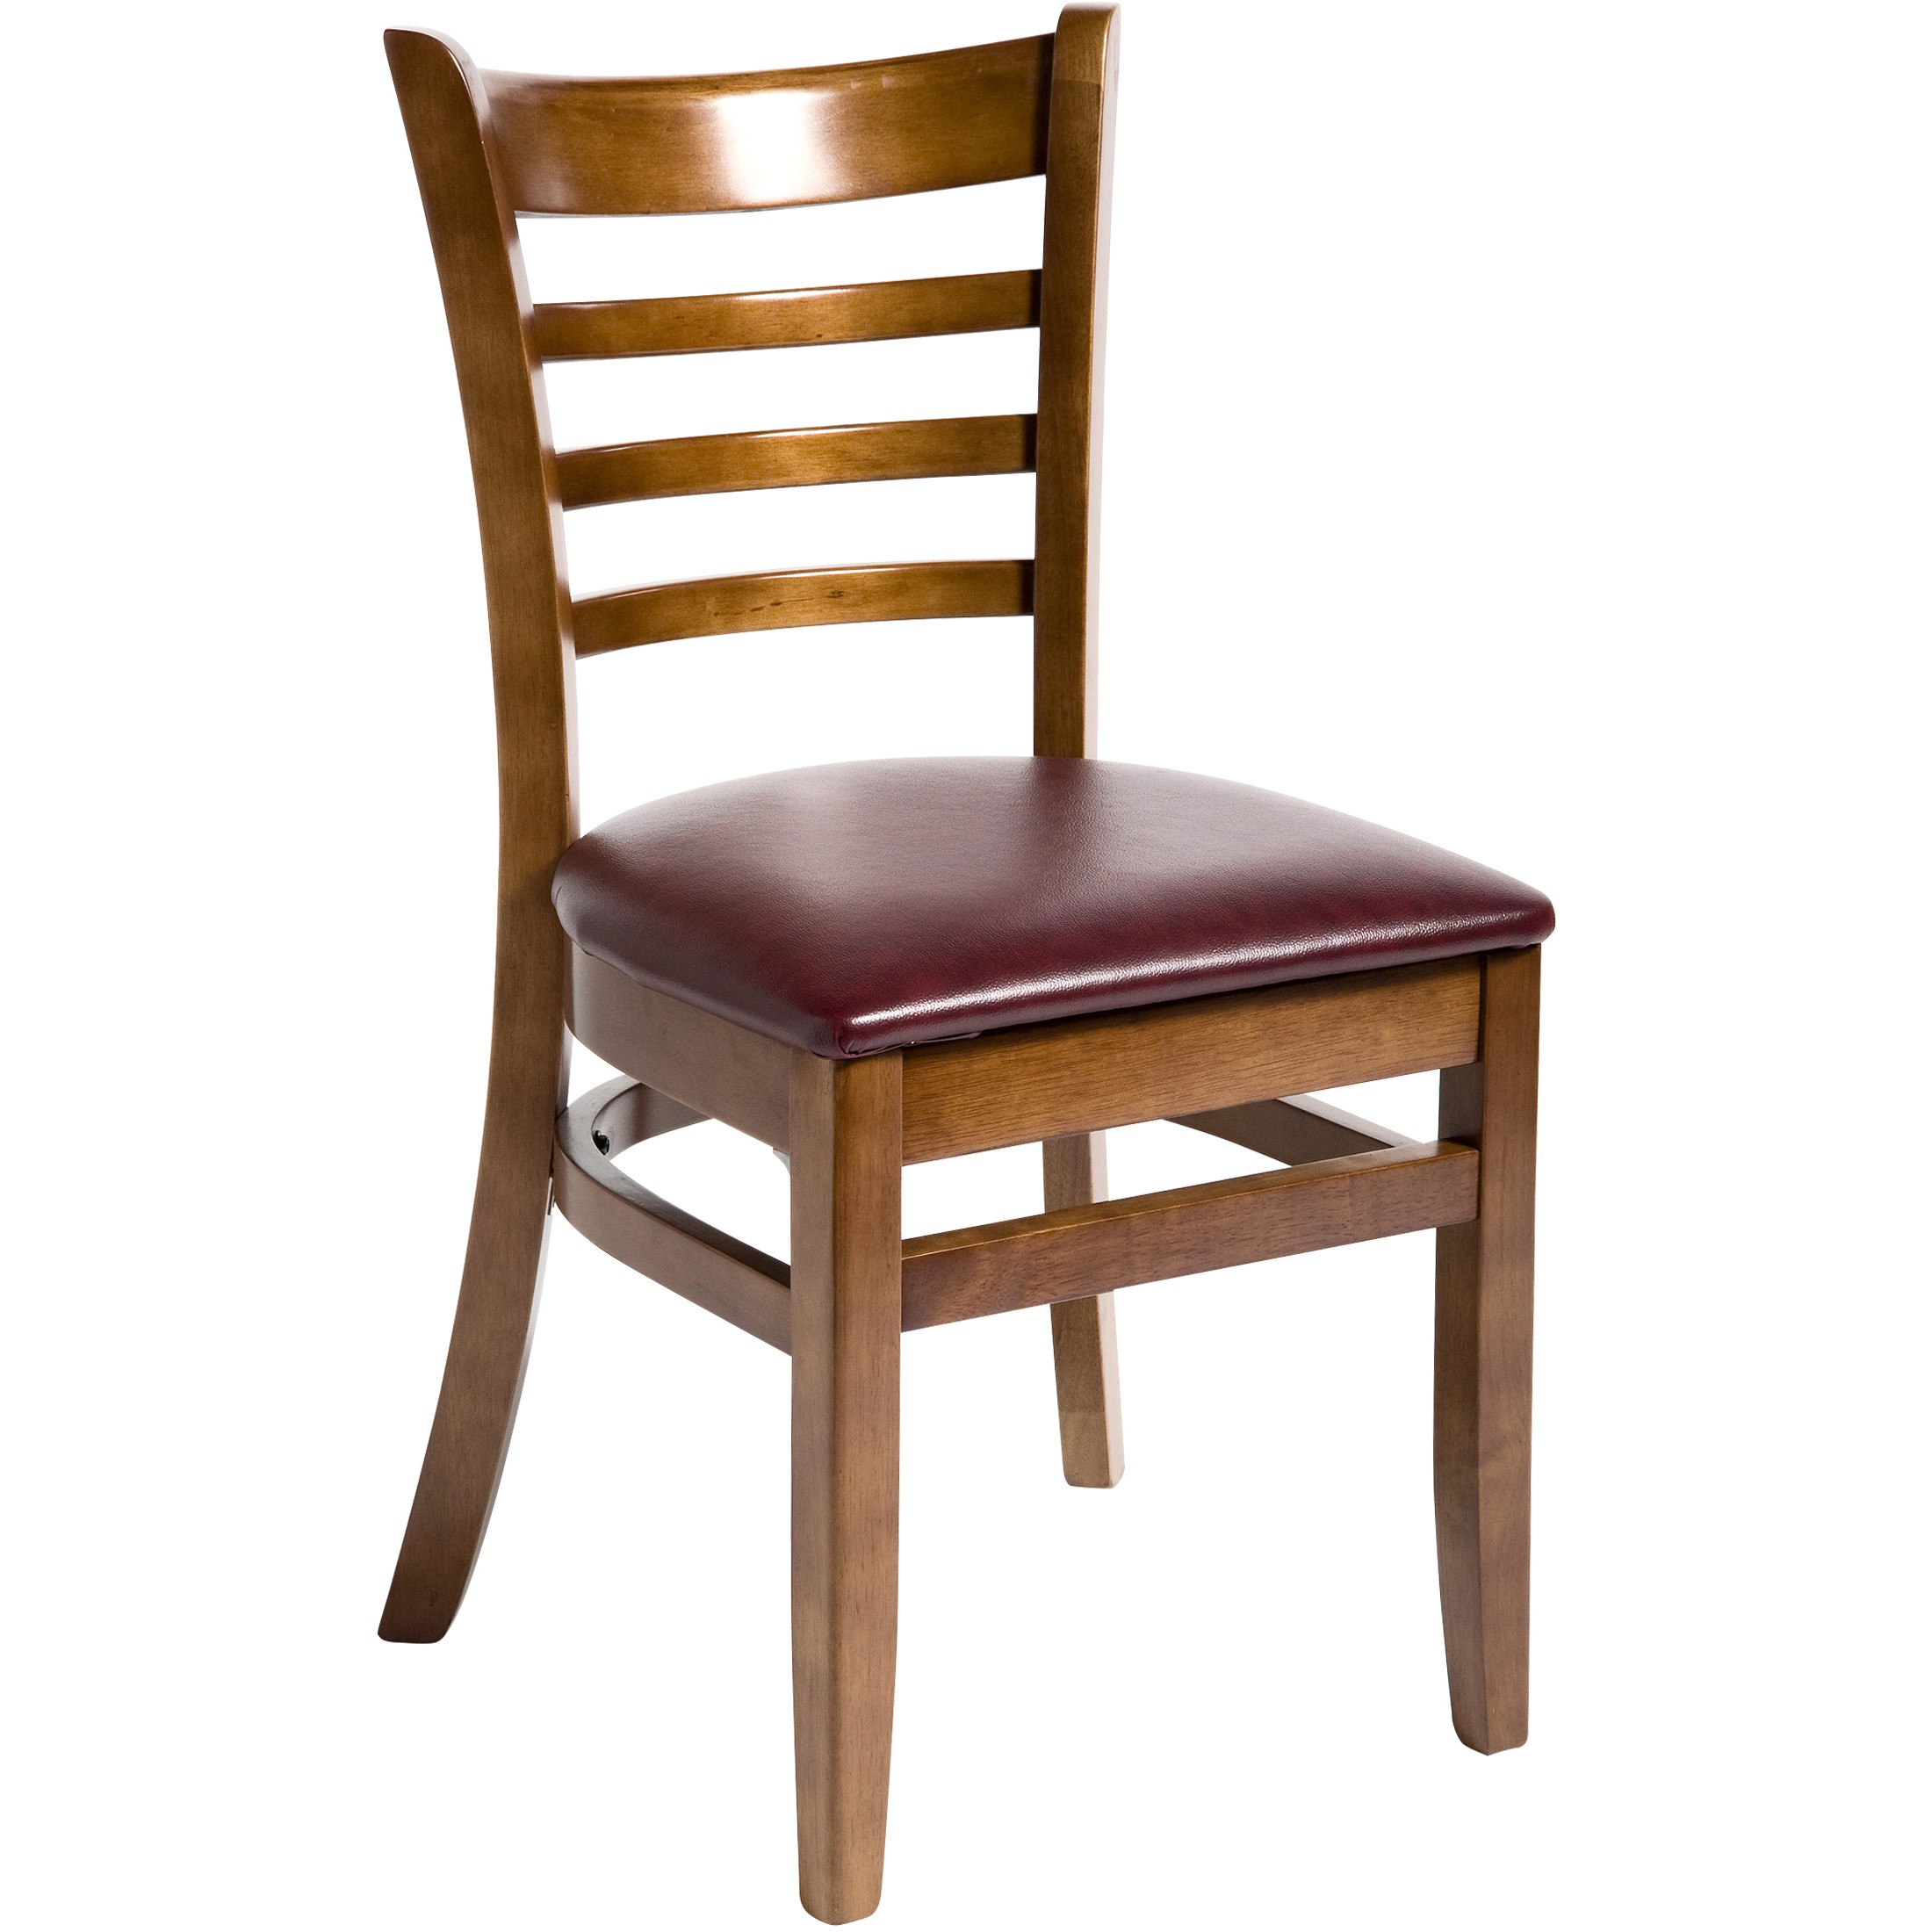 Wood restaurant furniture - Wood Ladder Back Chair Walnut Finish With Wine Vinyl Seat